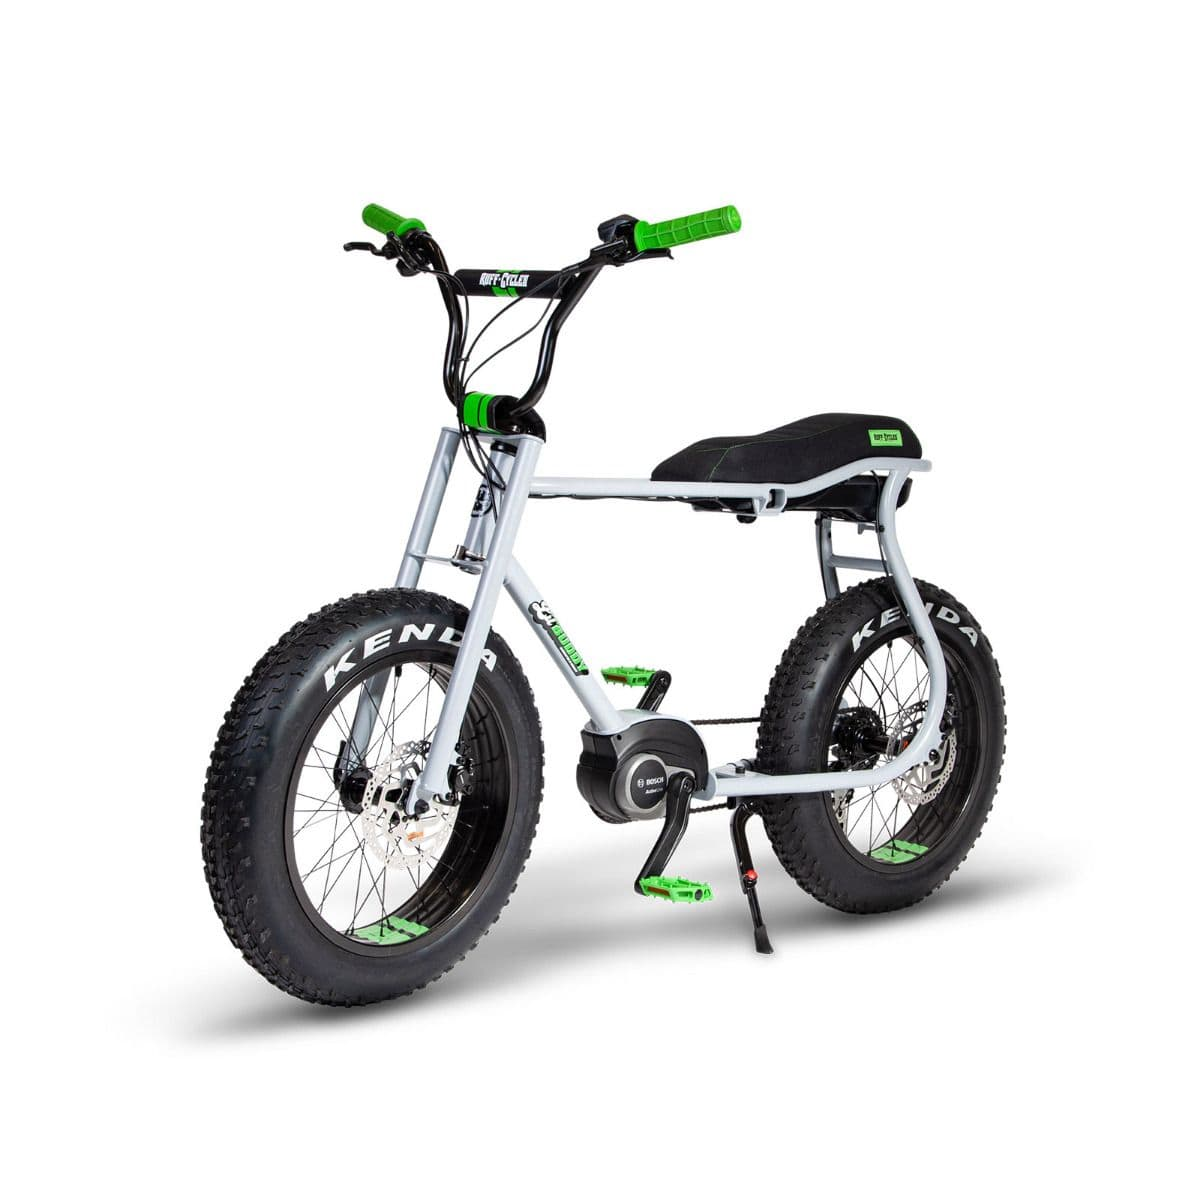 Ruff cycles - Lil' Buddy (Bosch Active Line 300wh) - Beyond Electrek